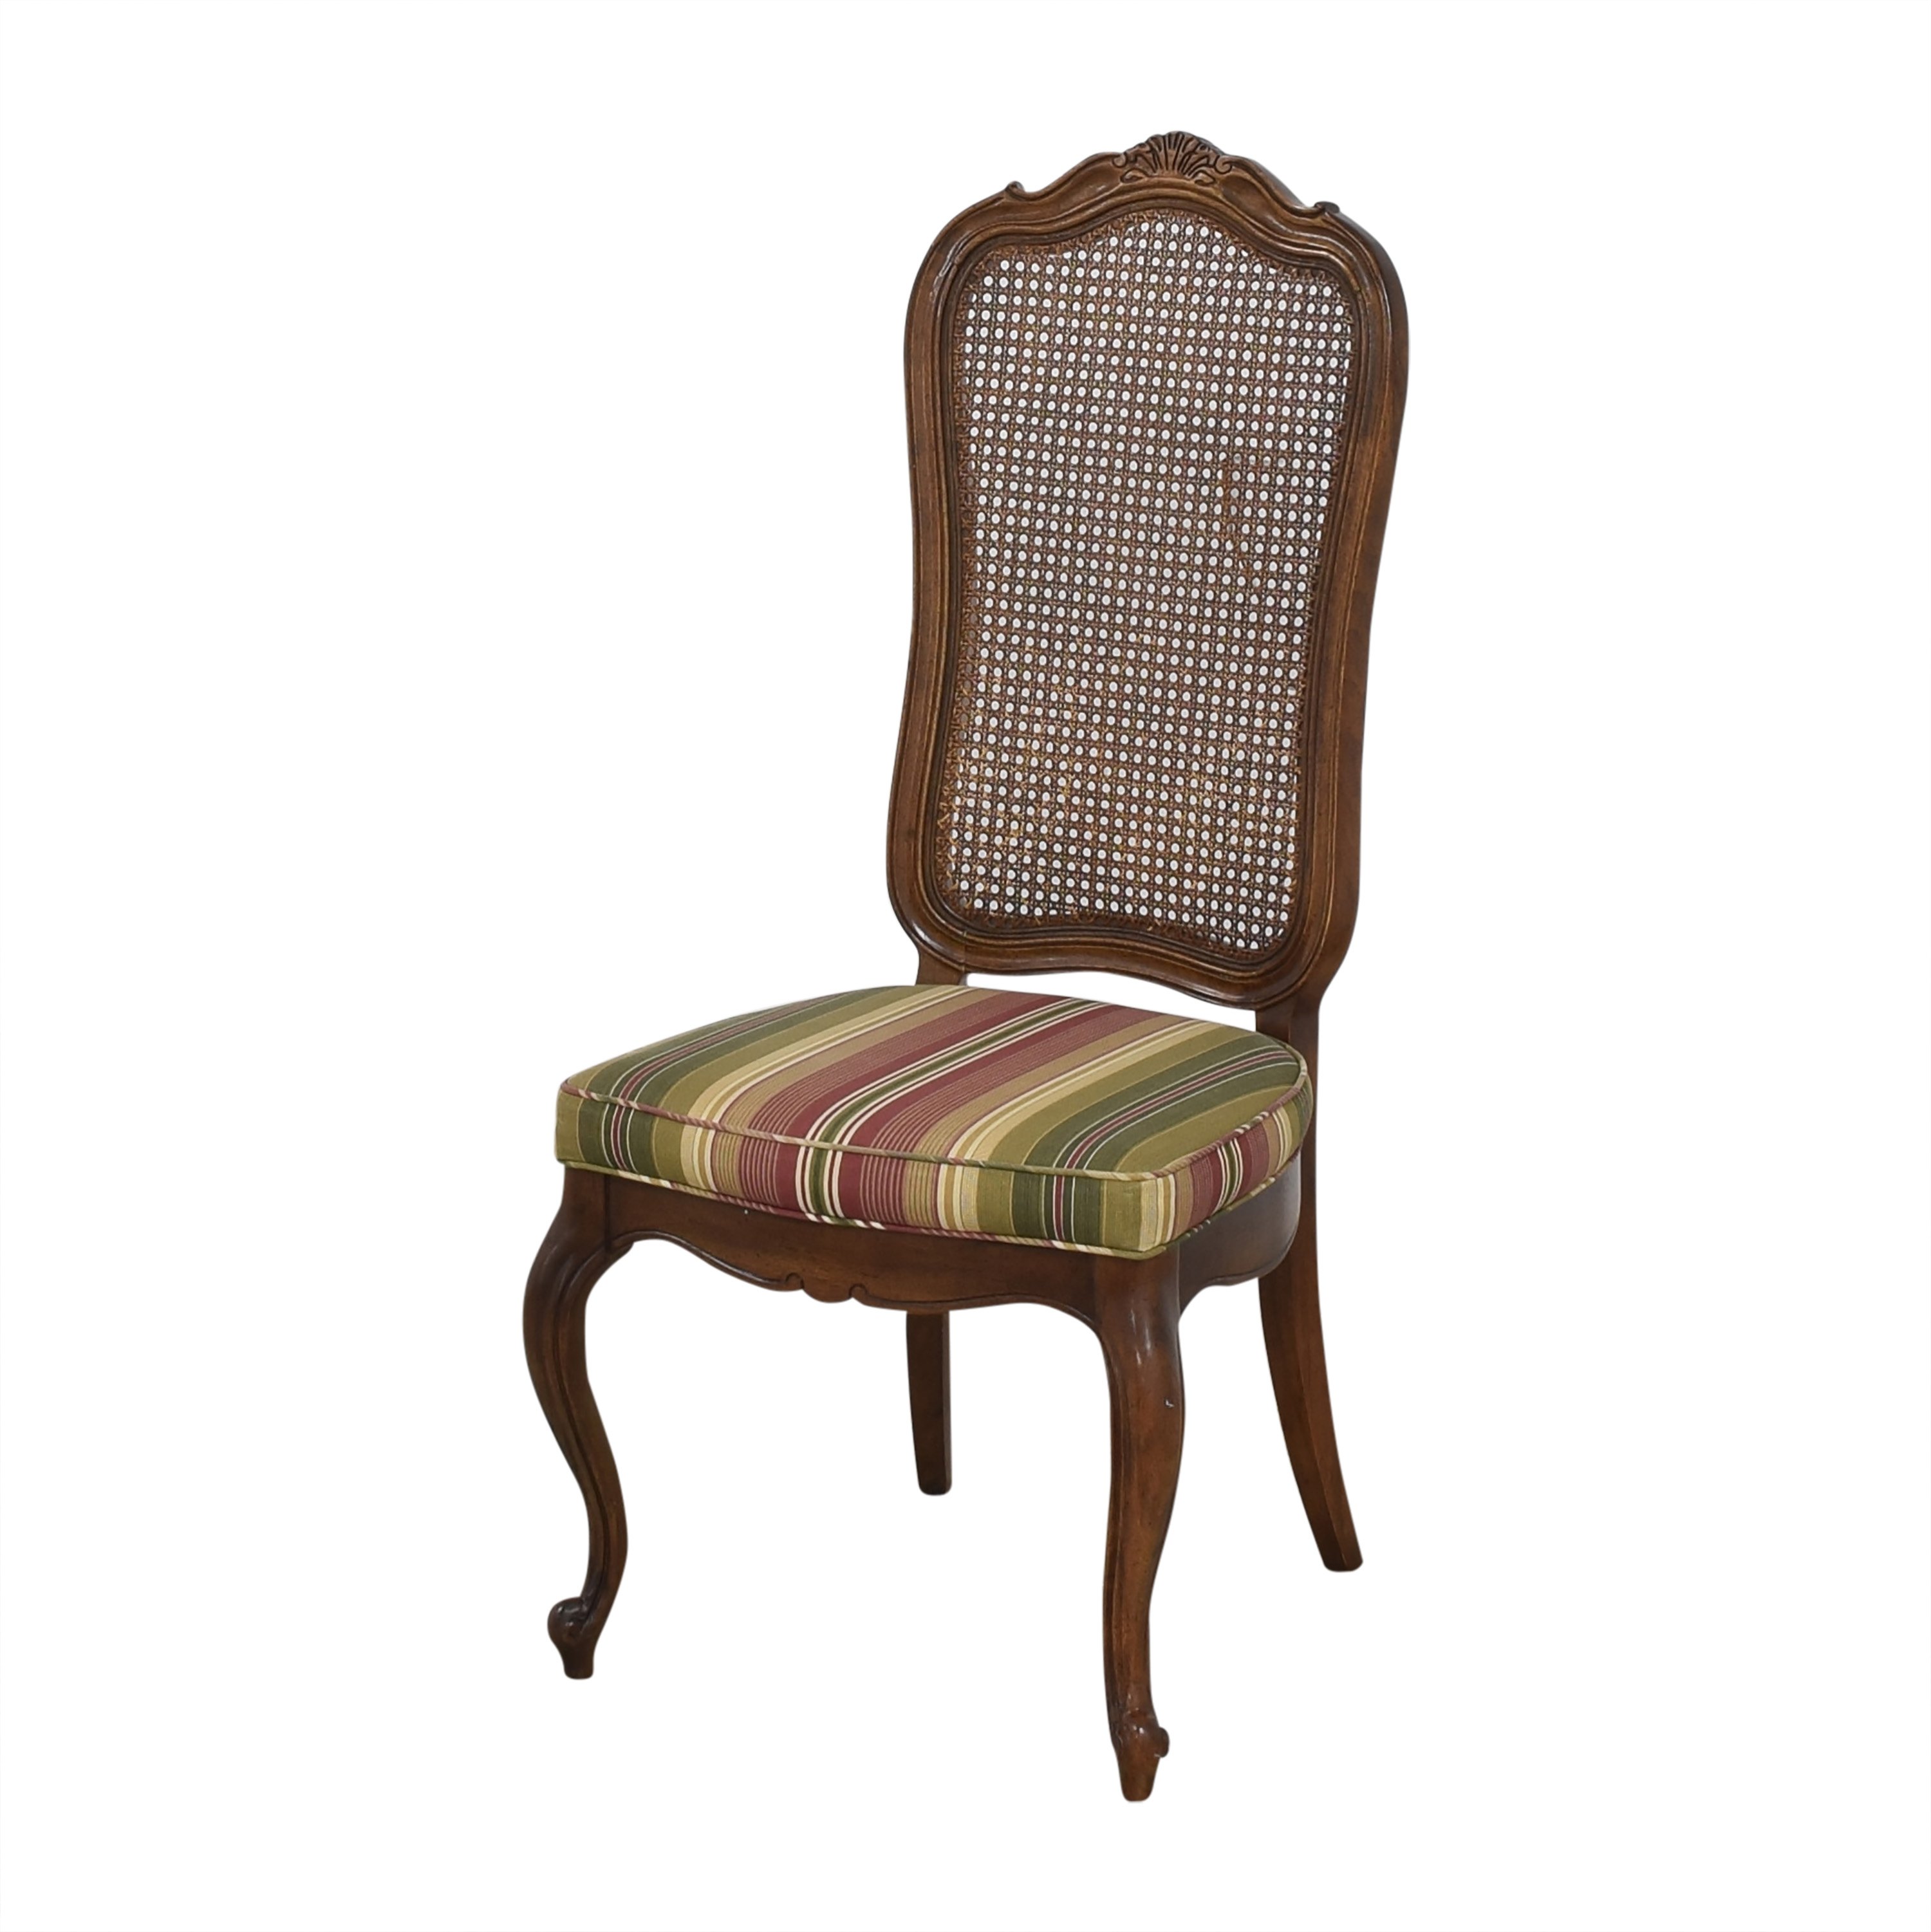 buy Thomasville Cane Back Dining Chairs Thomasville Chairs